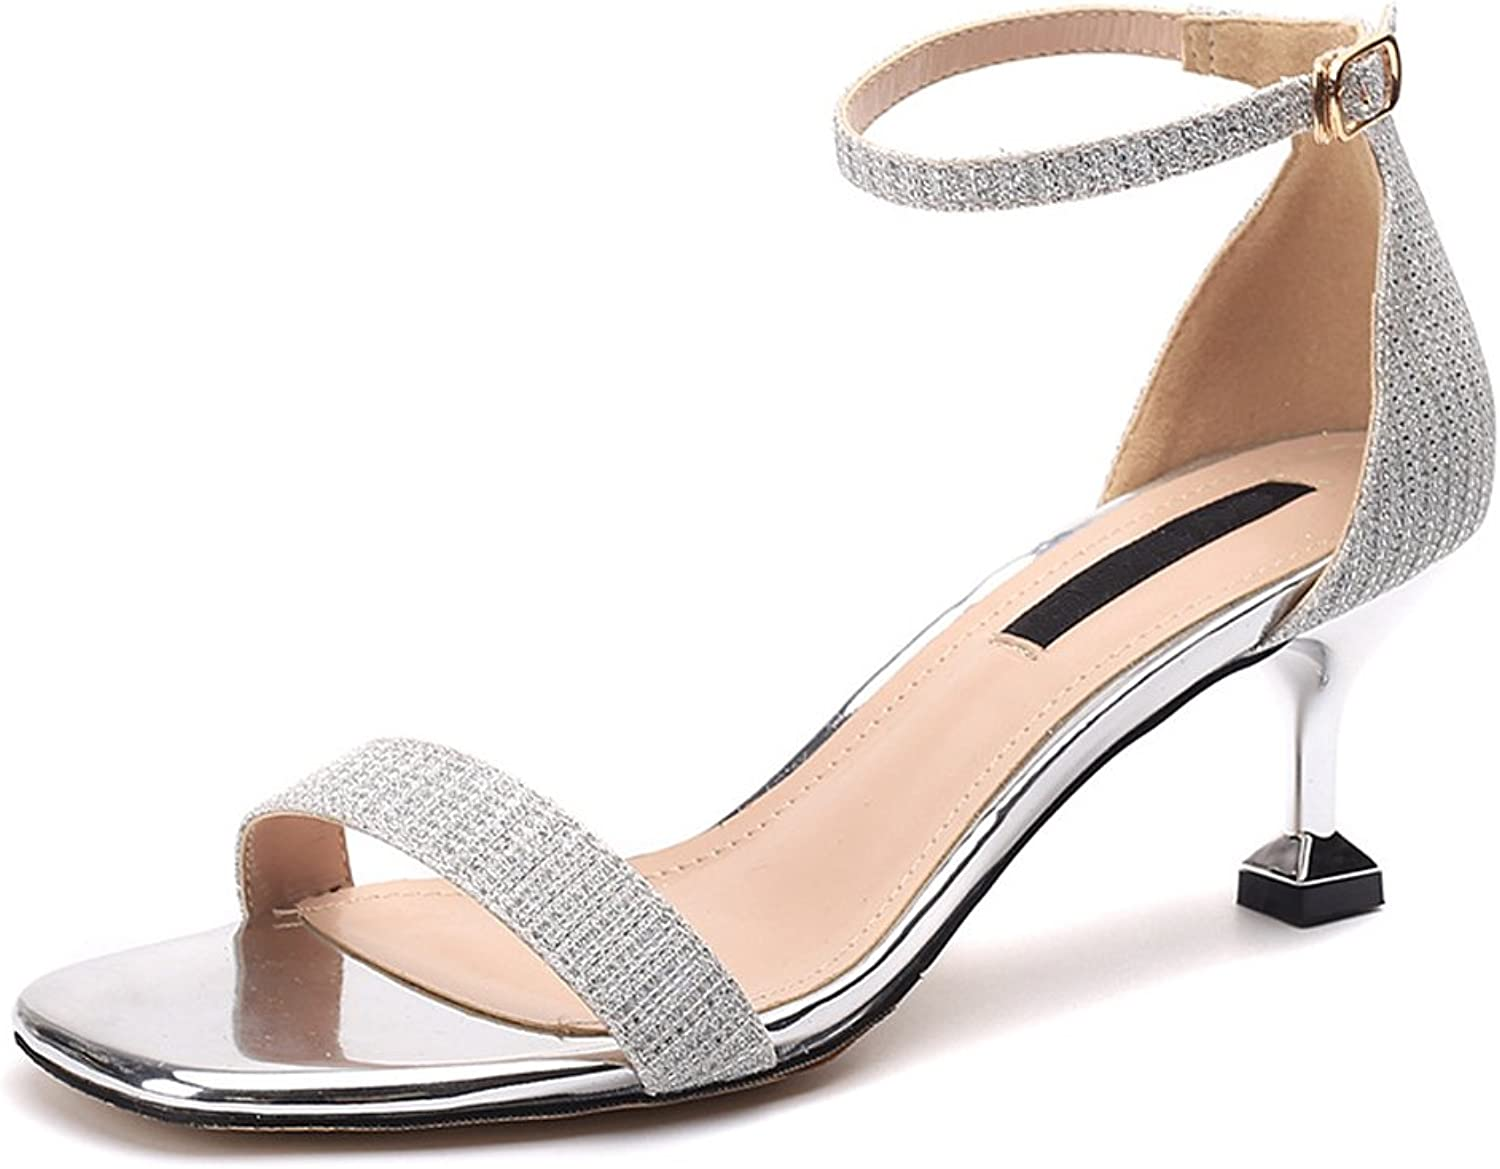 Dreneco Ruiren Women's Sandals Ankle High Heels Open Toe shoes for Ladies